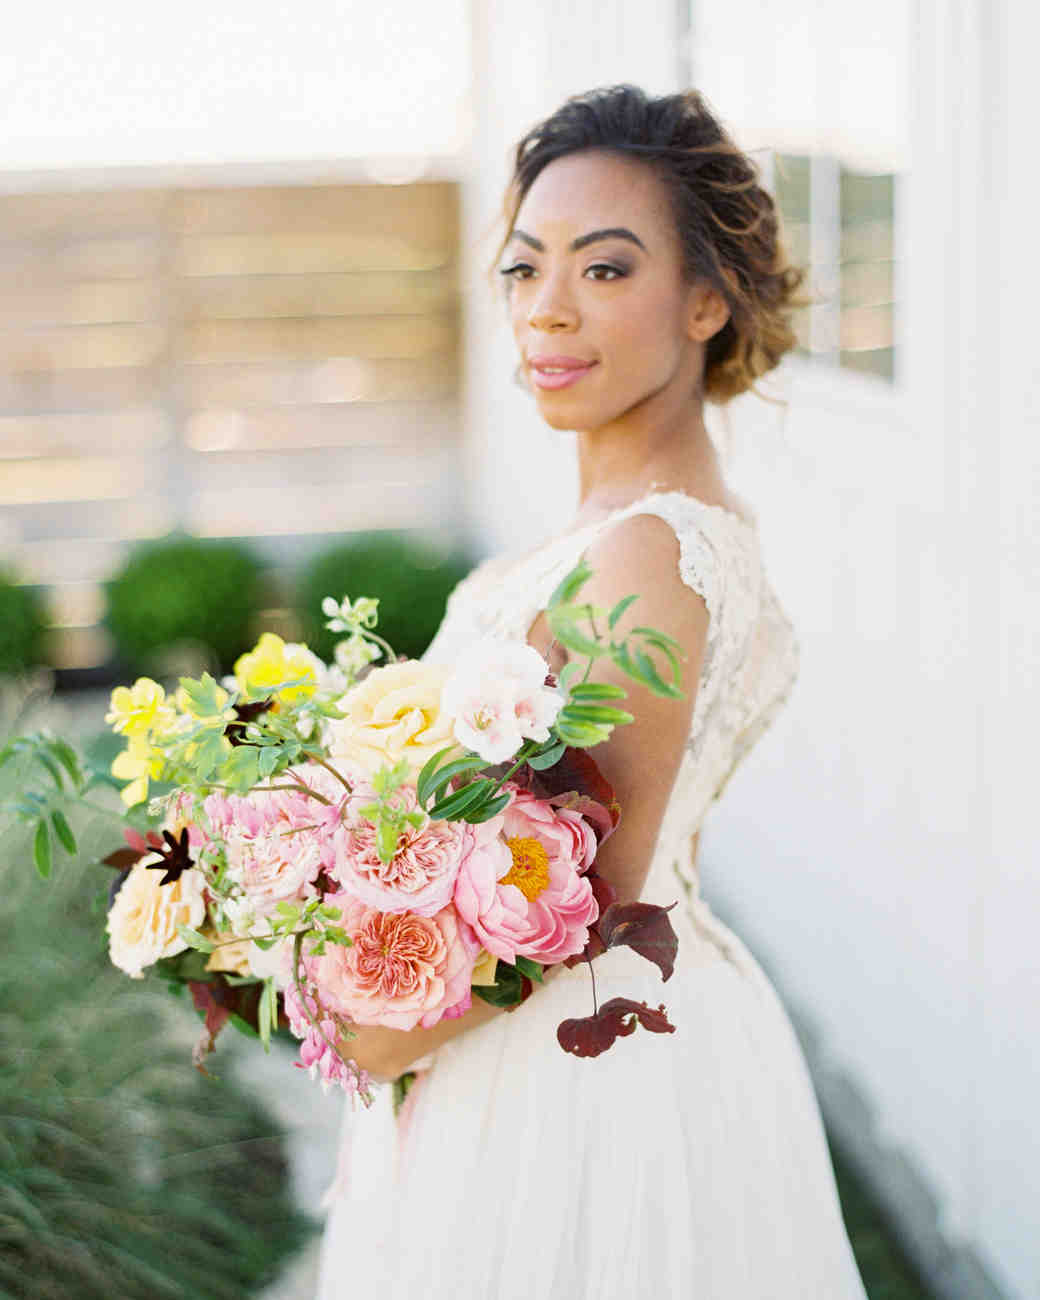 51 Romantic Wedding Hairstyles: 55 Simple Wedding Hairstyles That Prove Less Is More